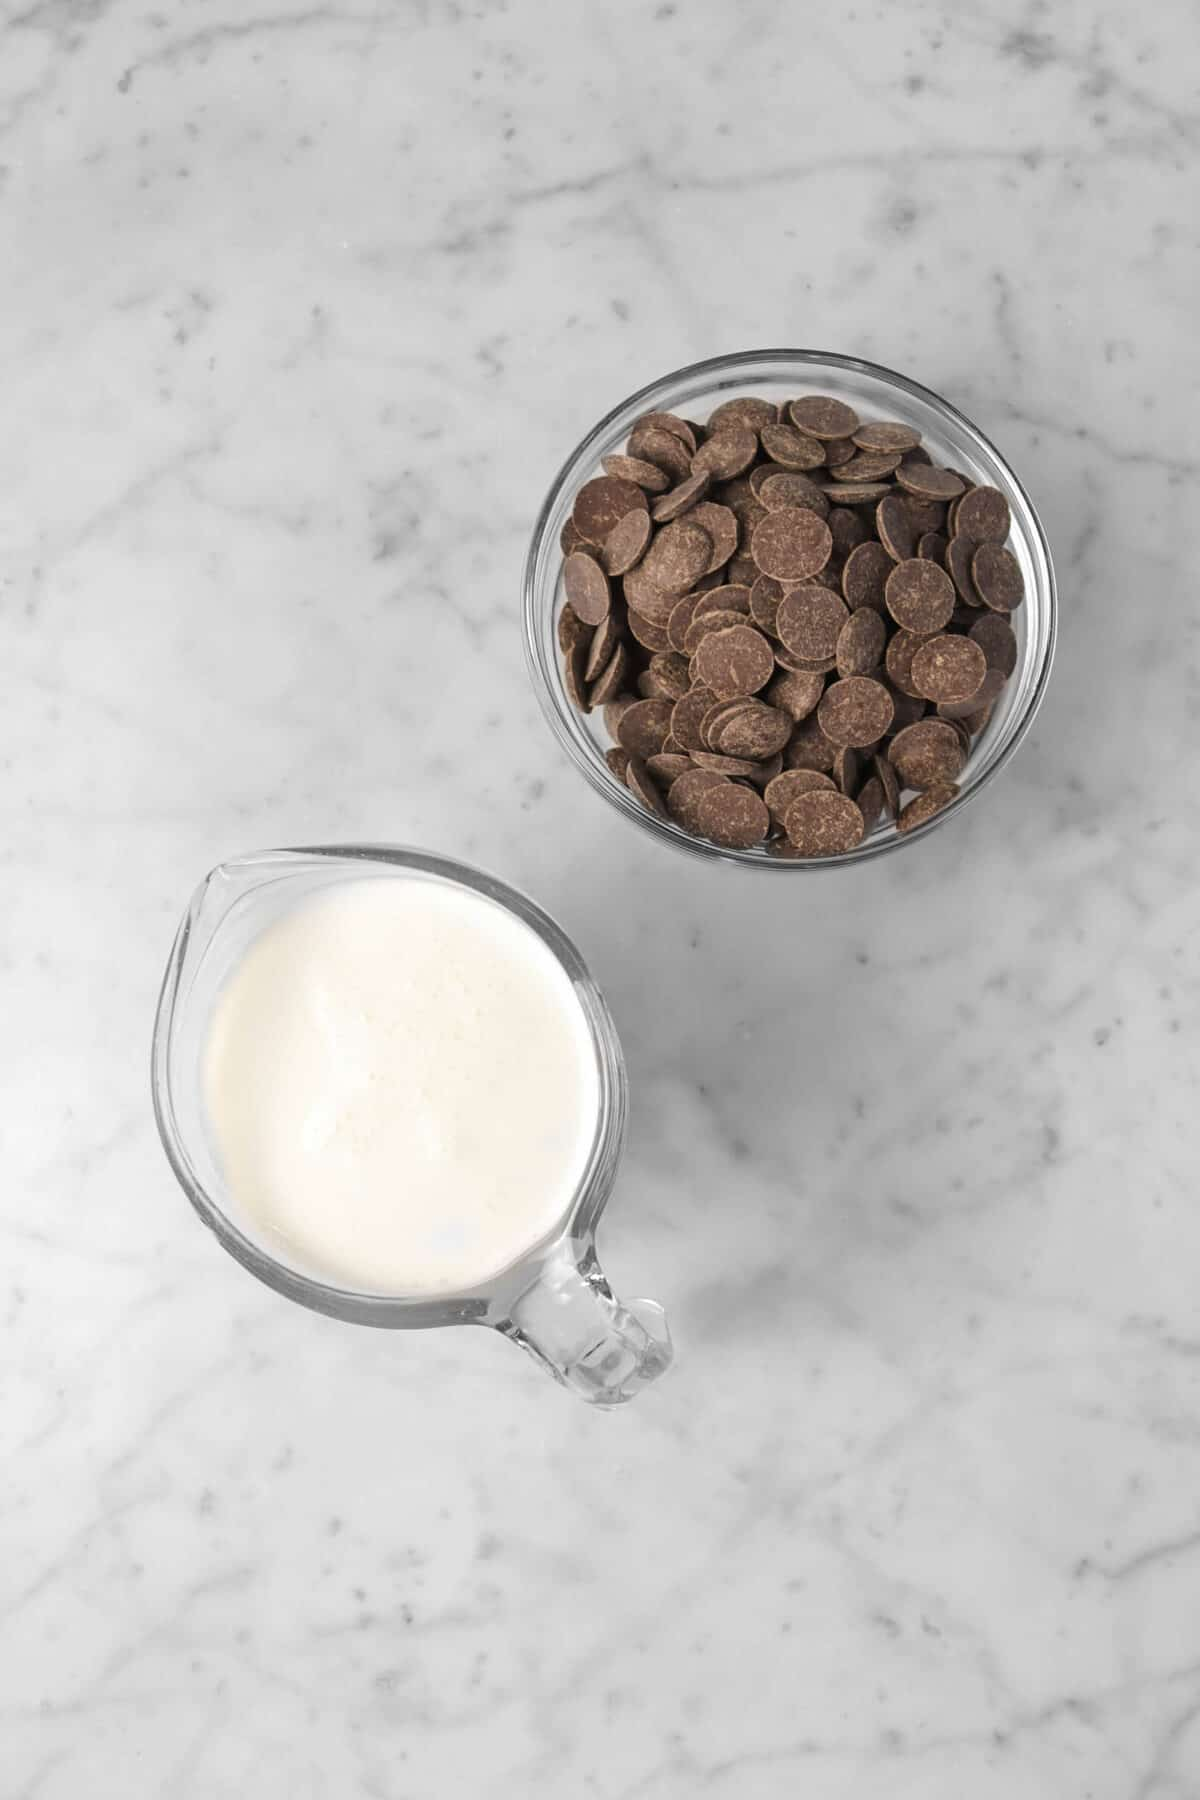 chocolate chips in a glass bowl and milk in a measuring cup